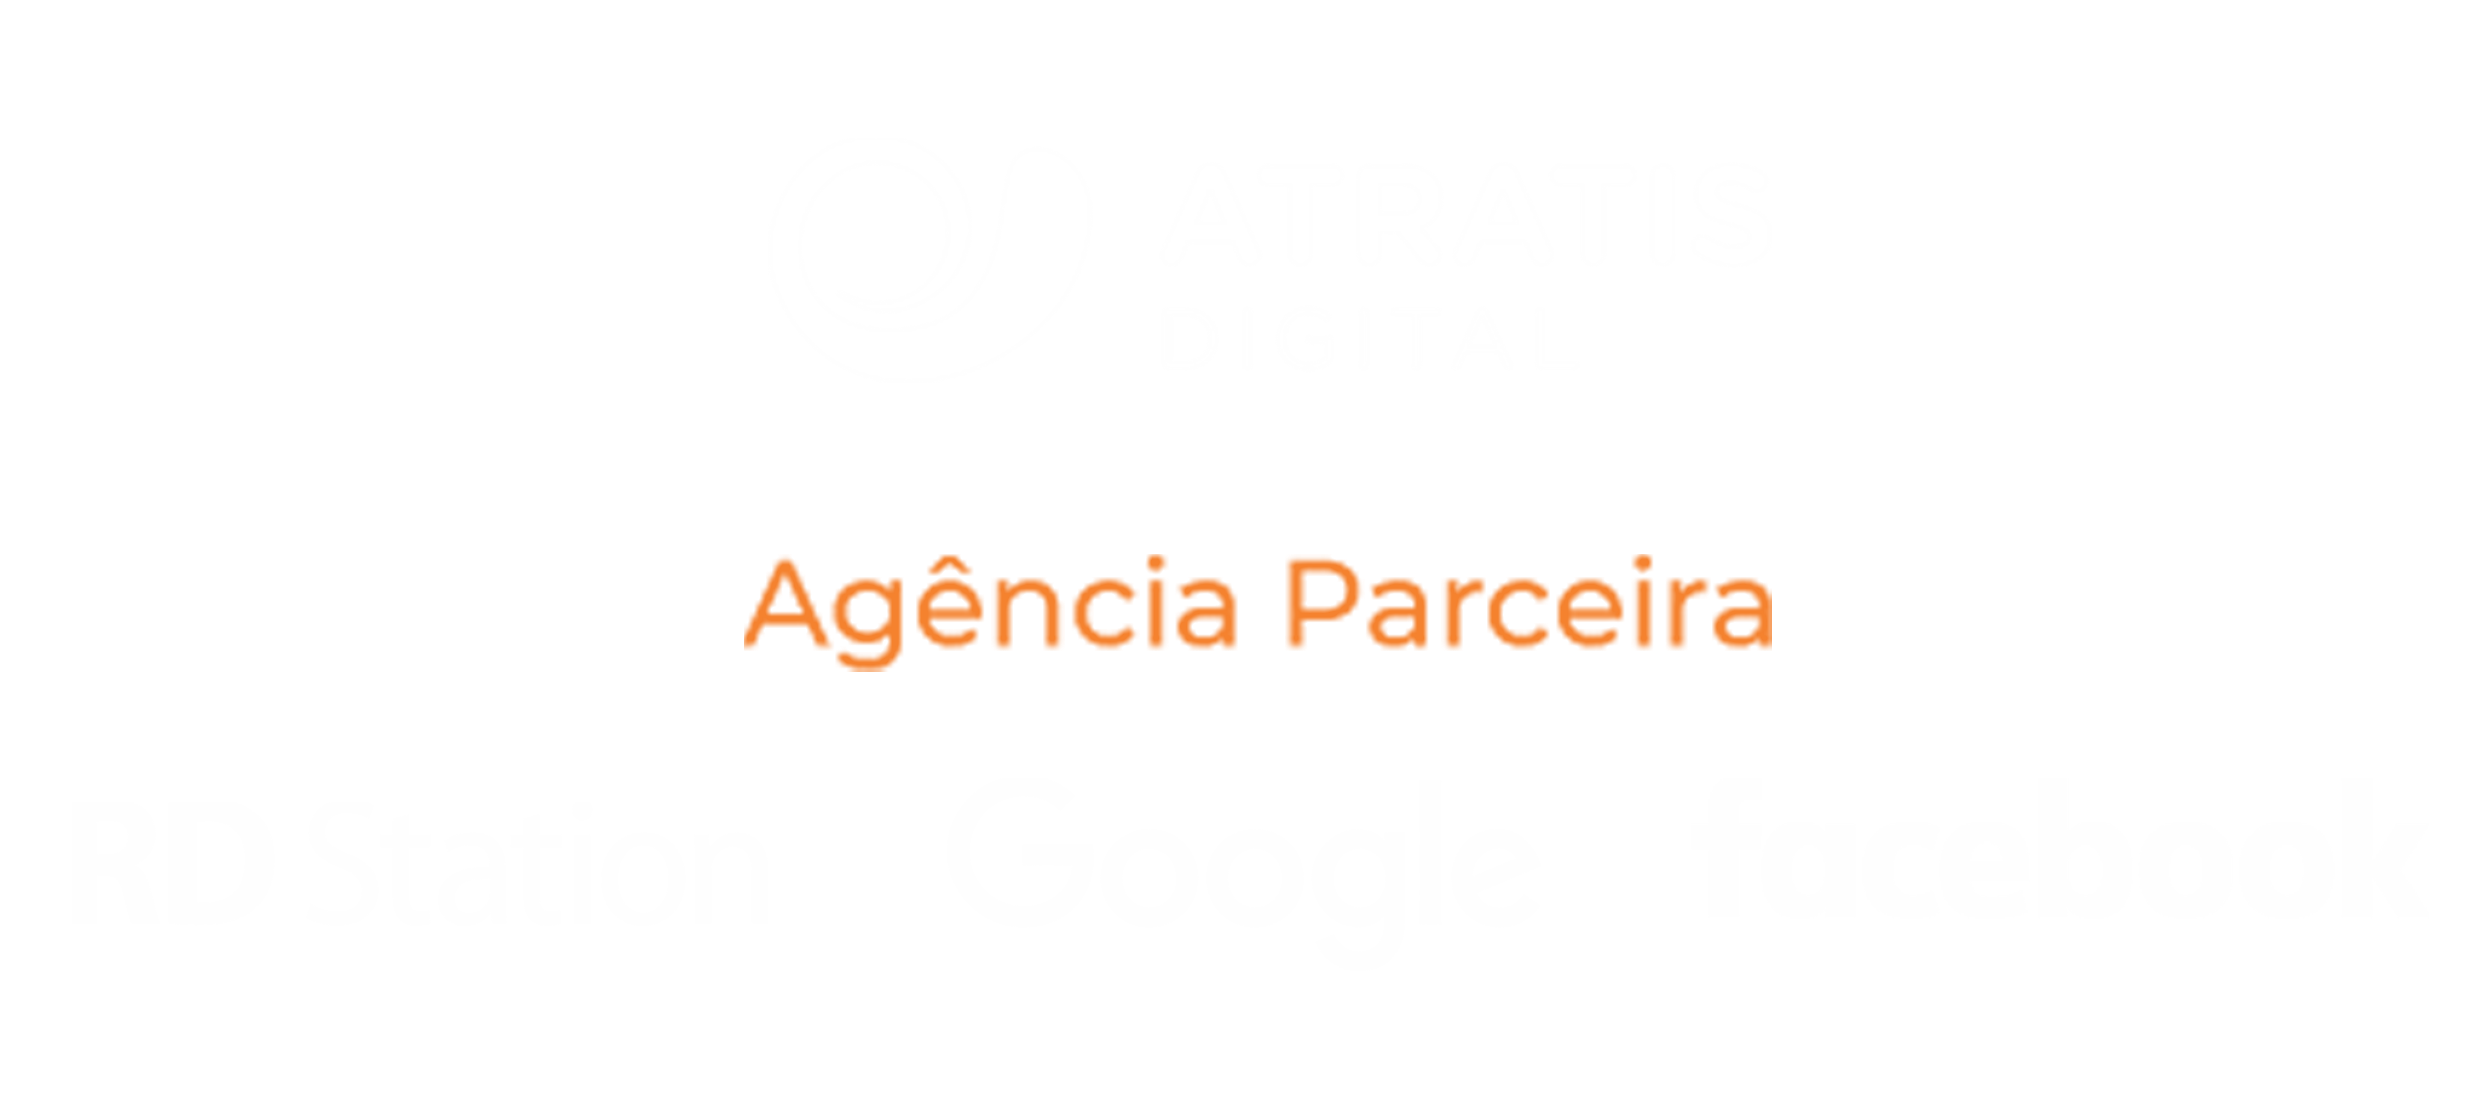 Atratis Digital - Agência marketing digital em Fortaleza